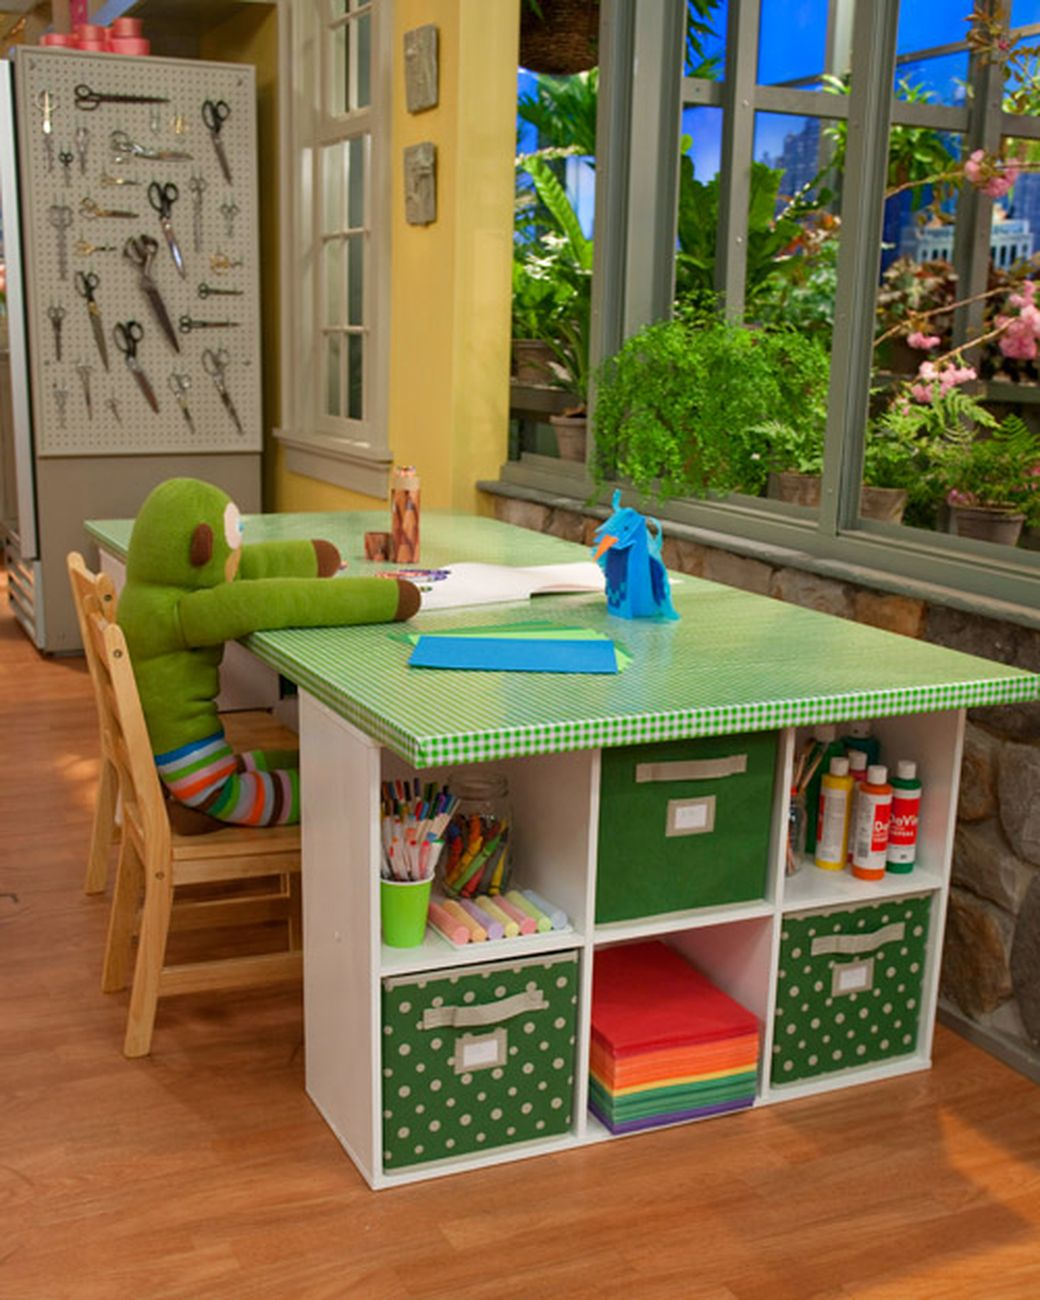 Diy Craft Room Table: 25+ Creative DIY Projects To Make A Craft Table